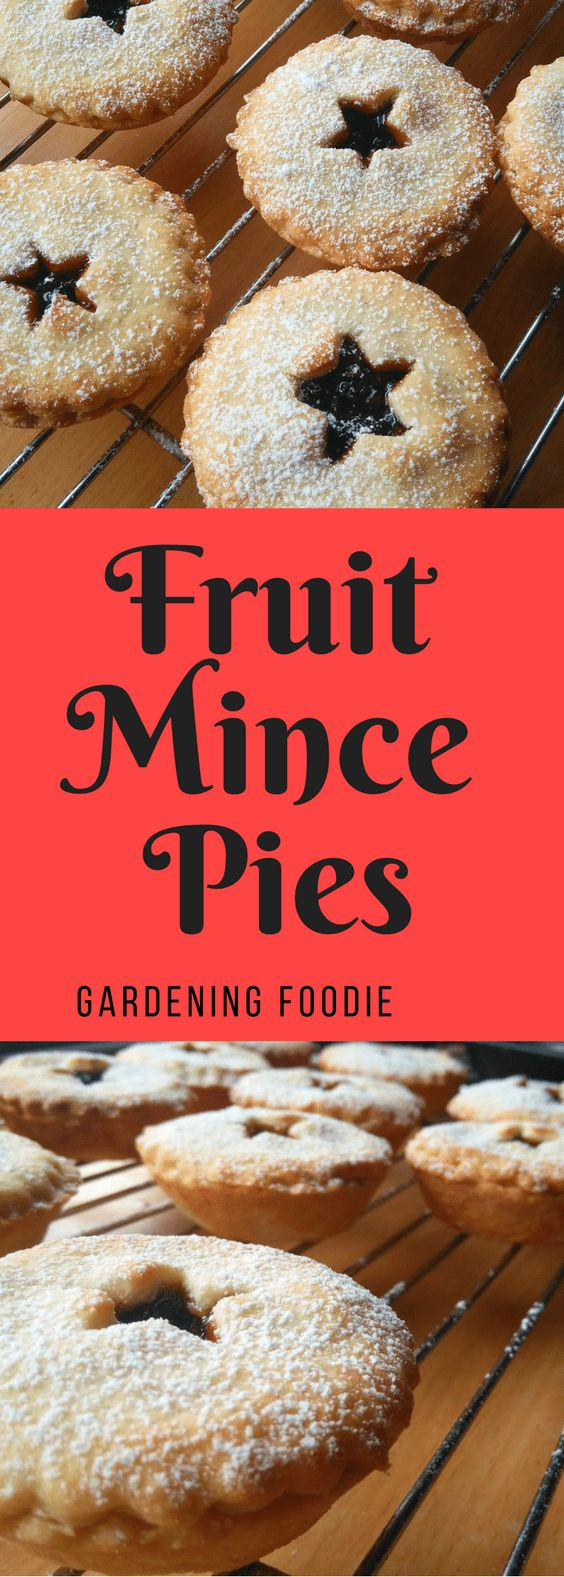 These fruit mince piesare made with delicious shortcrust pastry and filled with traditional spiced fruit mincemeat, and dusted with sugar